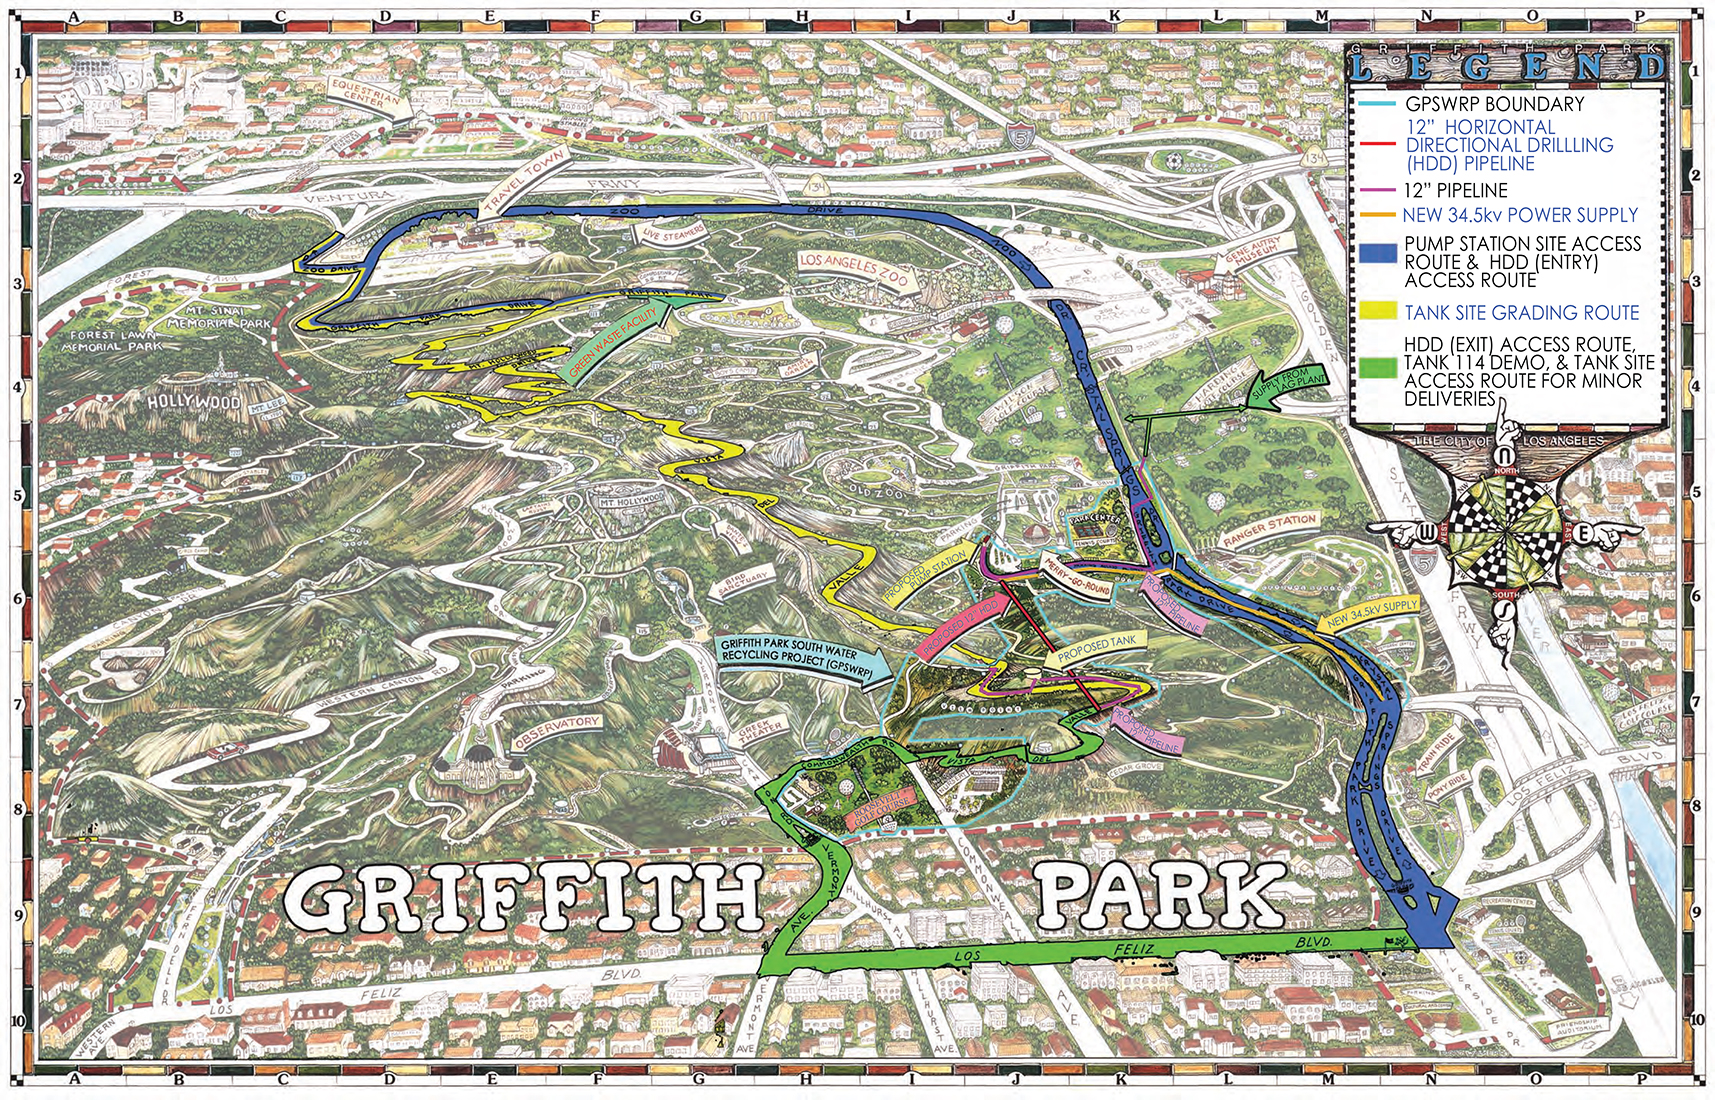 dwp s griffith park water recycling project